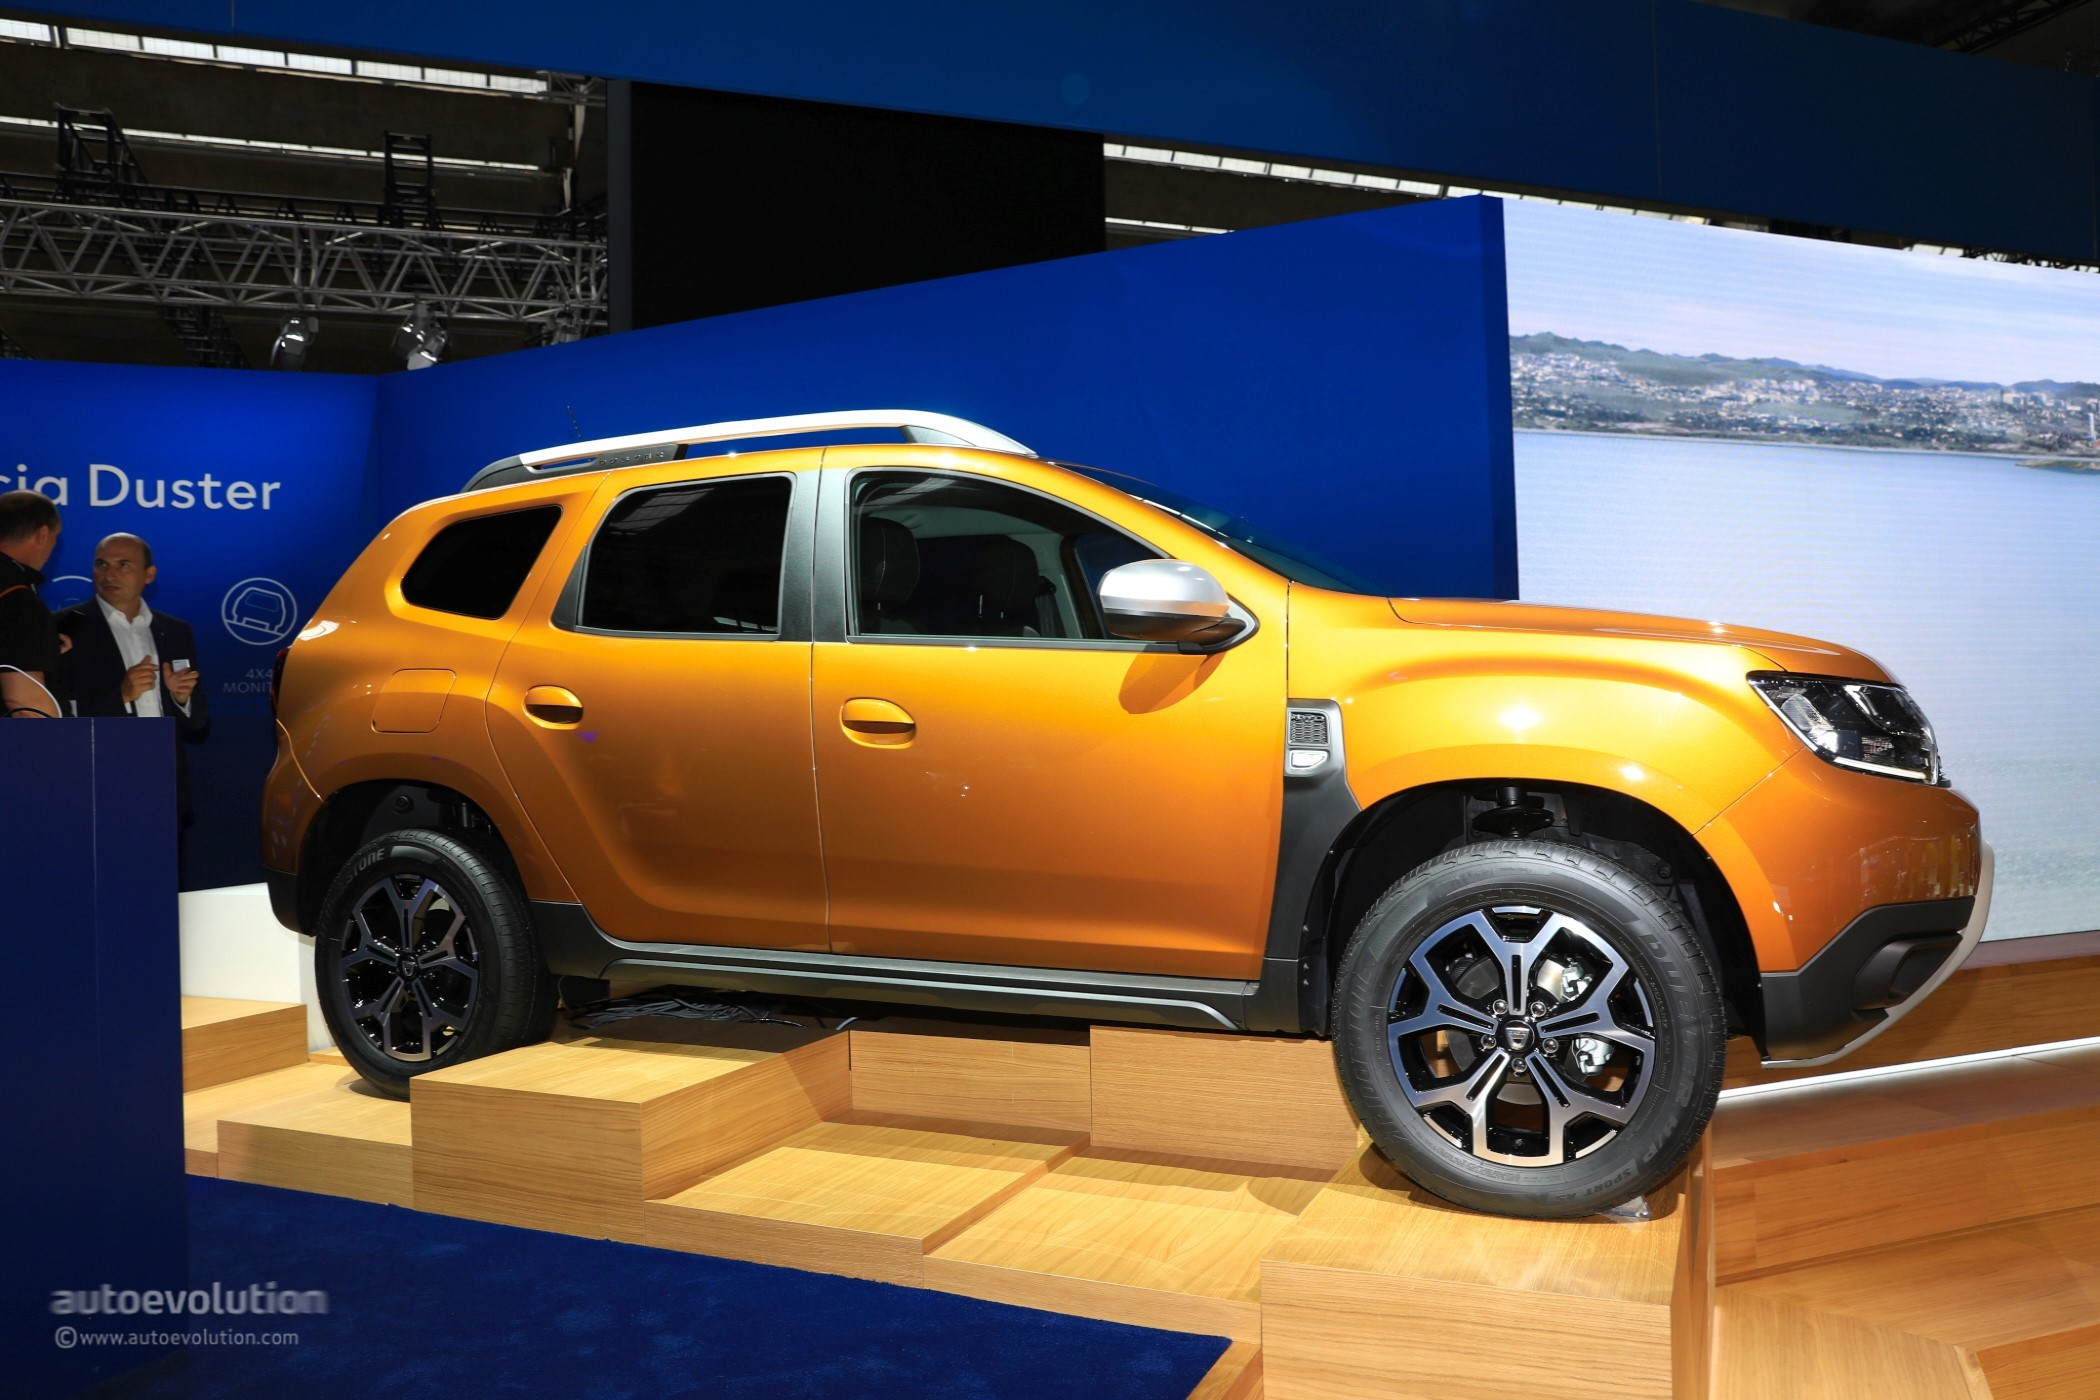 2018 dacia duster basic infotainment system unveiled hint it 39 s basic autoevolution. Black Bedroom Furniture Sets. Home Design Ideas